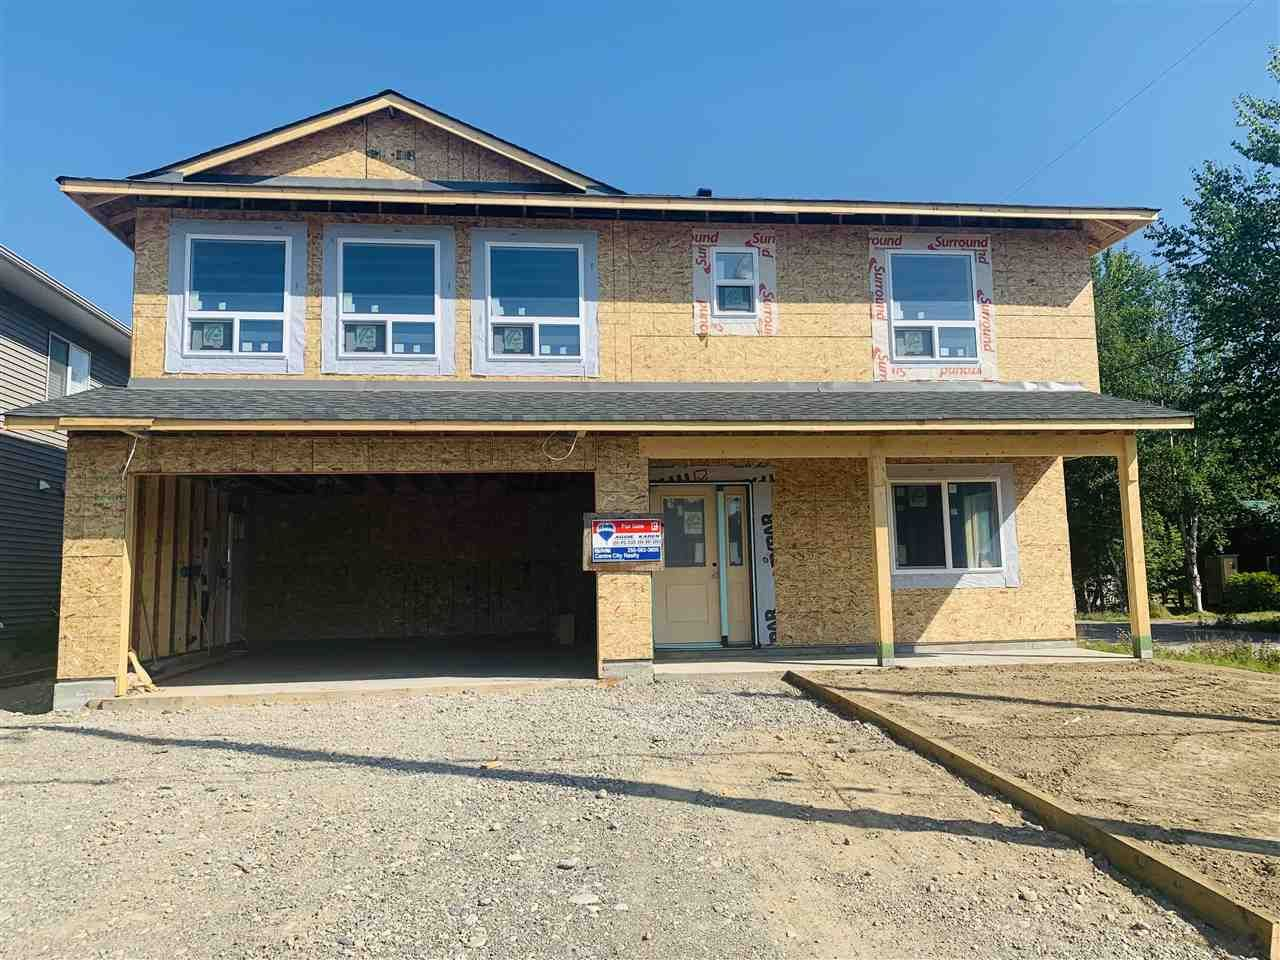 Main Photo: 7006 HILLU Road in Prince George: Hart Highway House for sale (PG City North (Zone 73))  : MLS®# R2480746